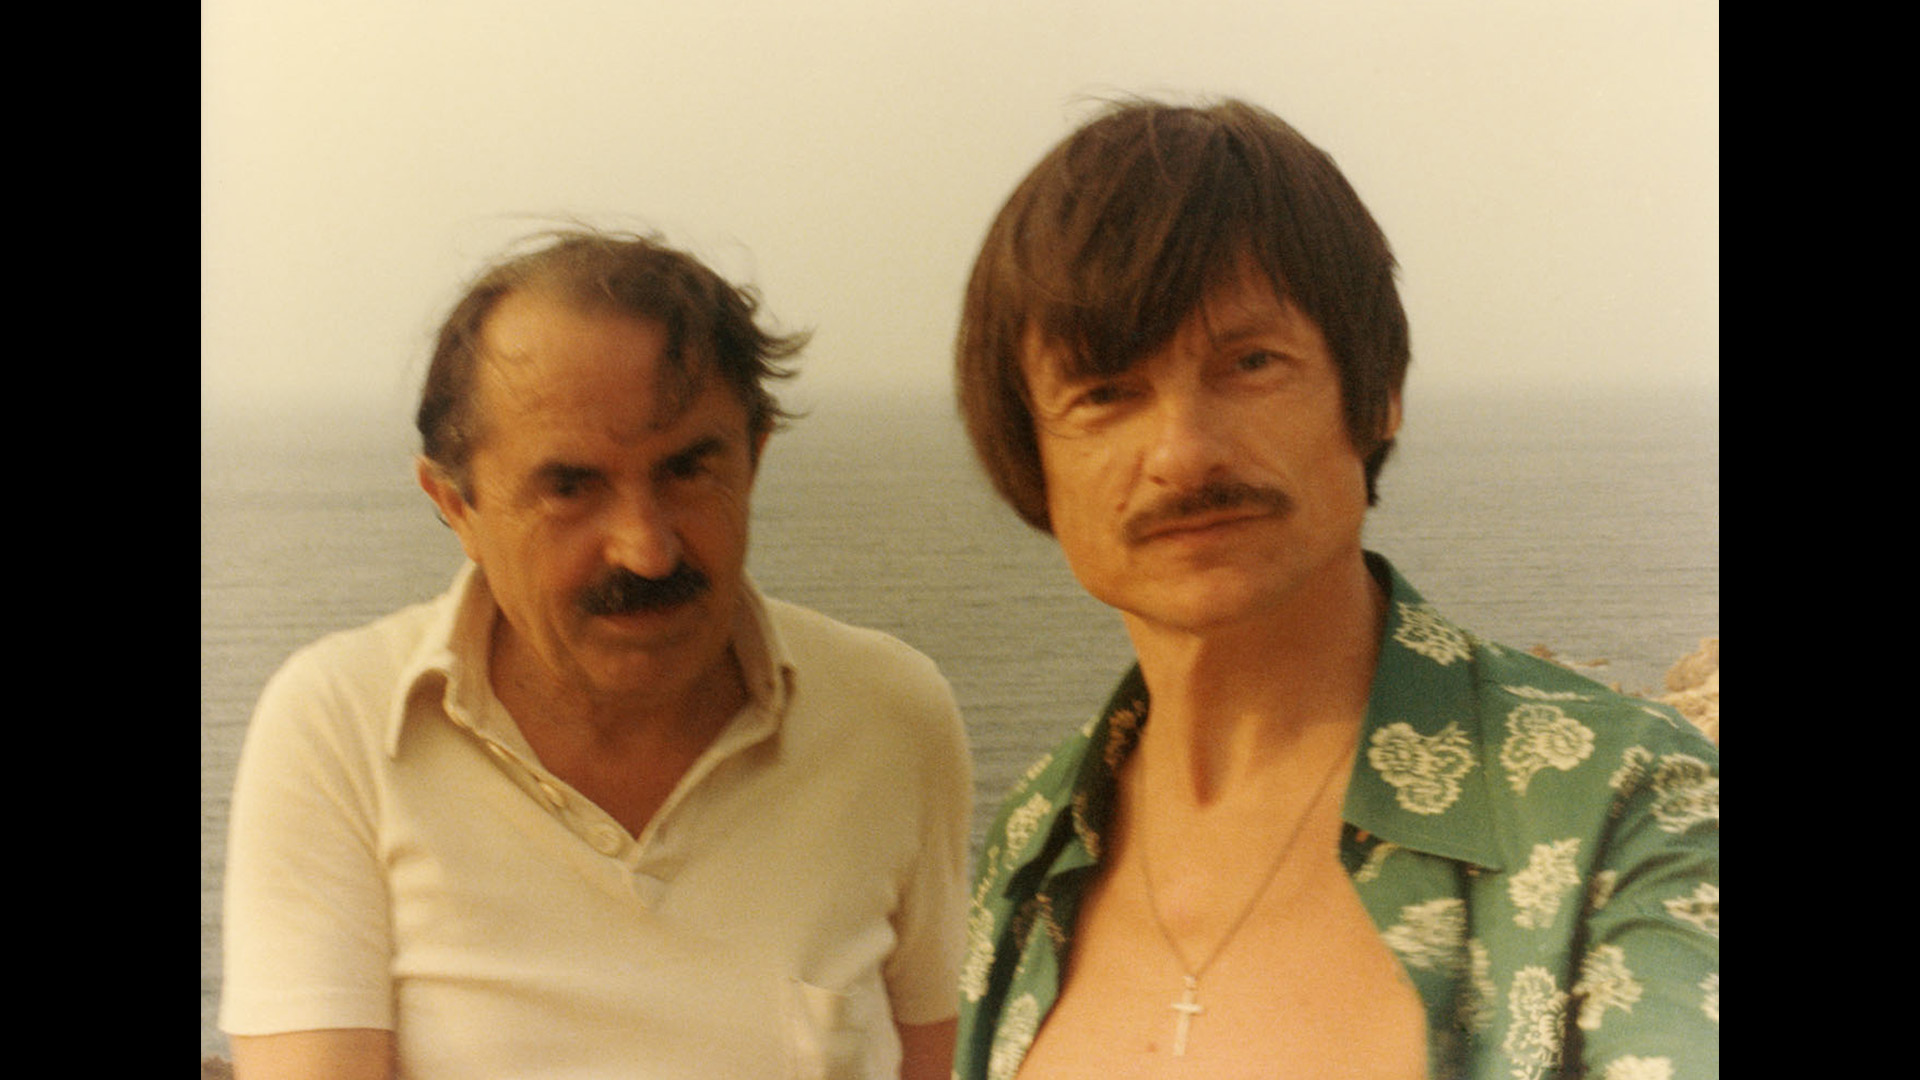 Tonino Guerra and Andrei Tarkovsky by Michaelangelo courtesy of Enrica Antonioni